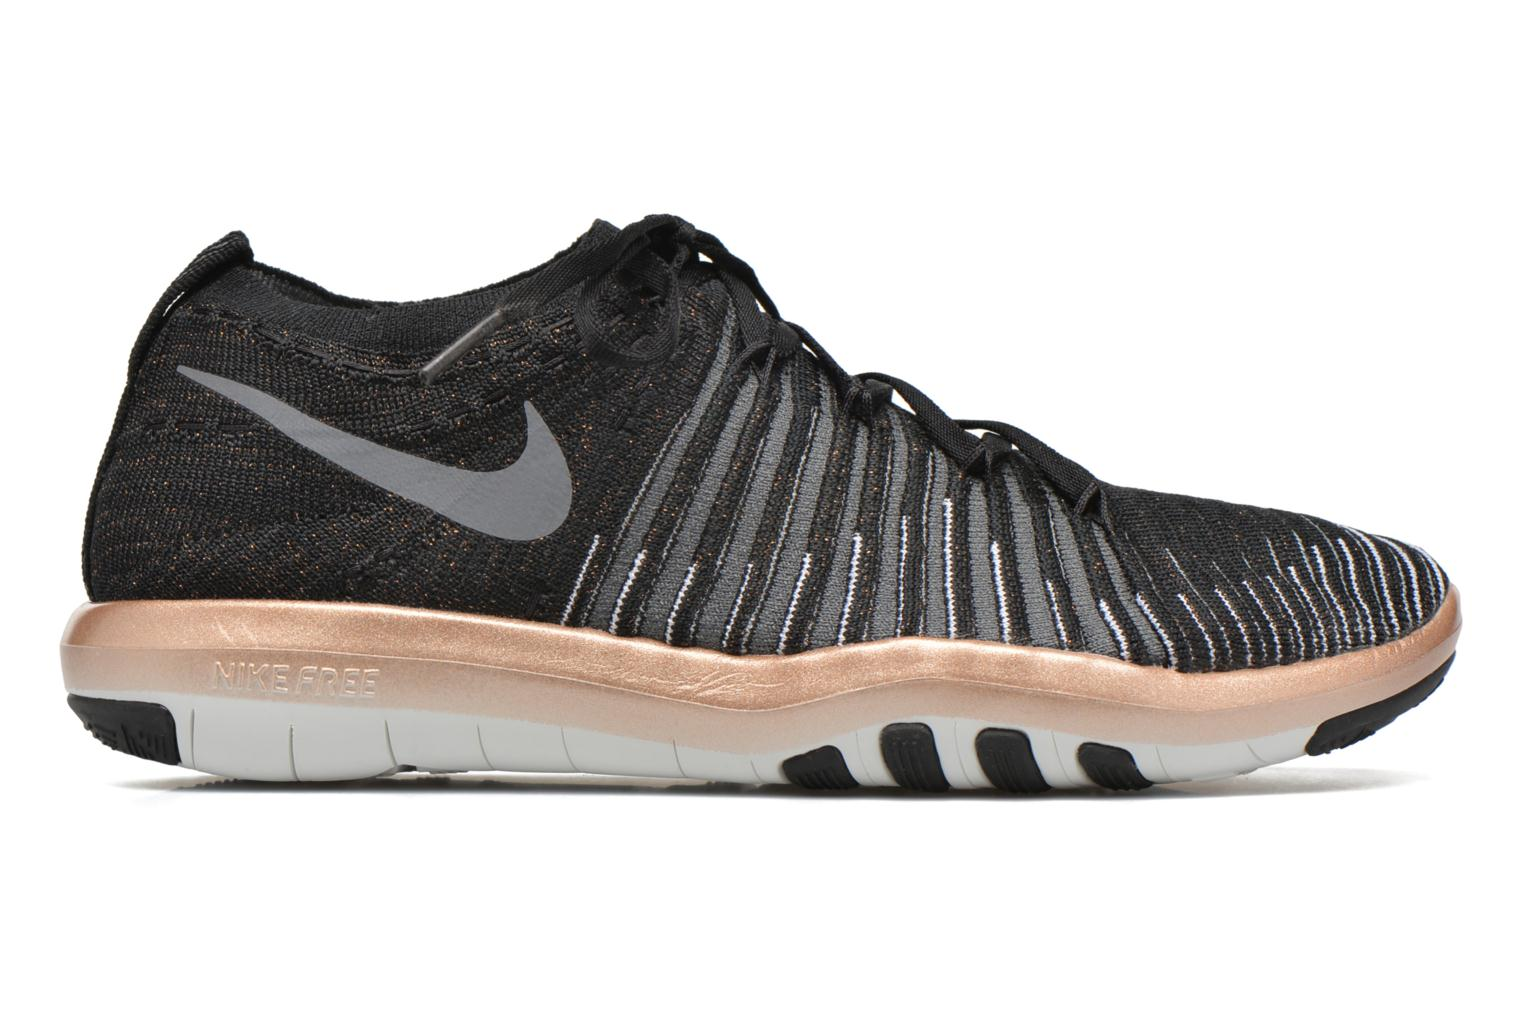 Wm Nike Free Transform Flyknit Black/Cool Grey-Mtlc Red Bronze